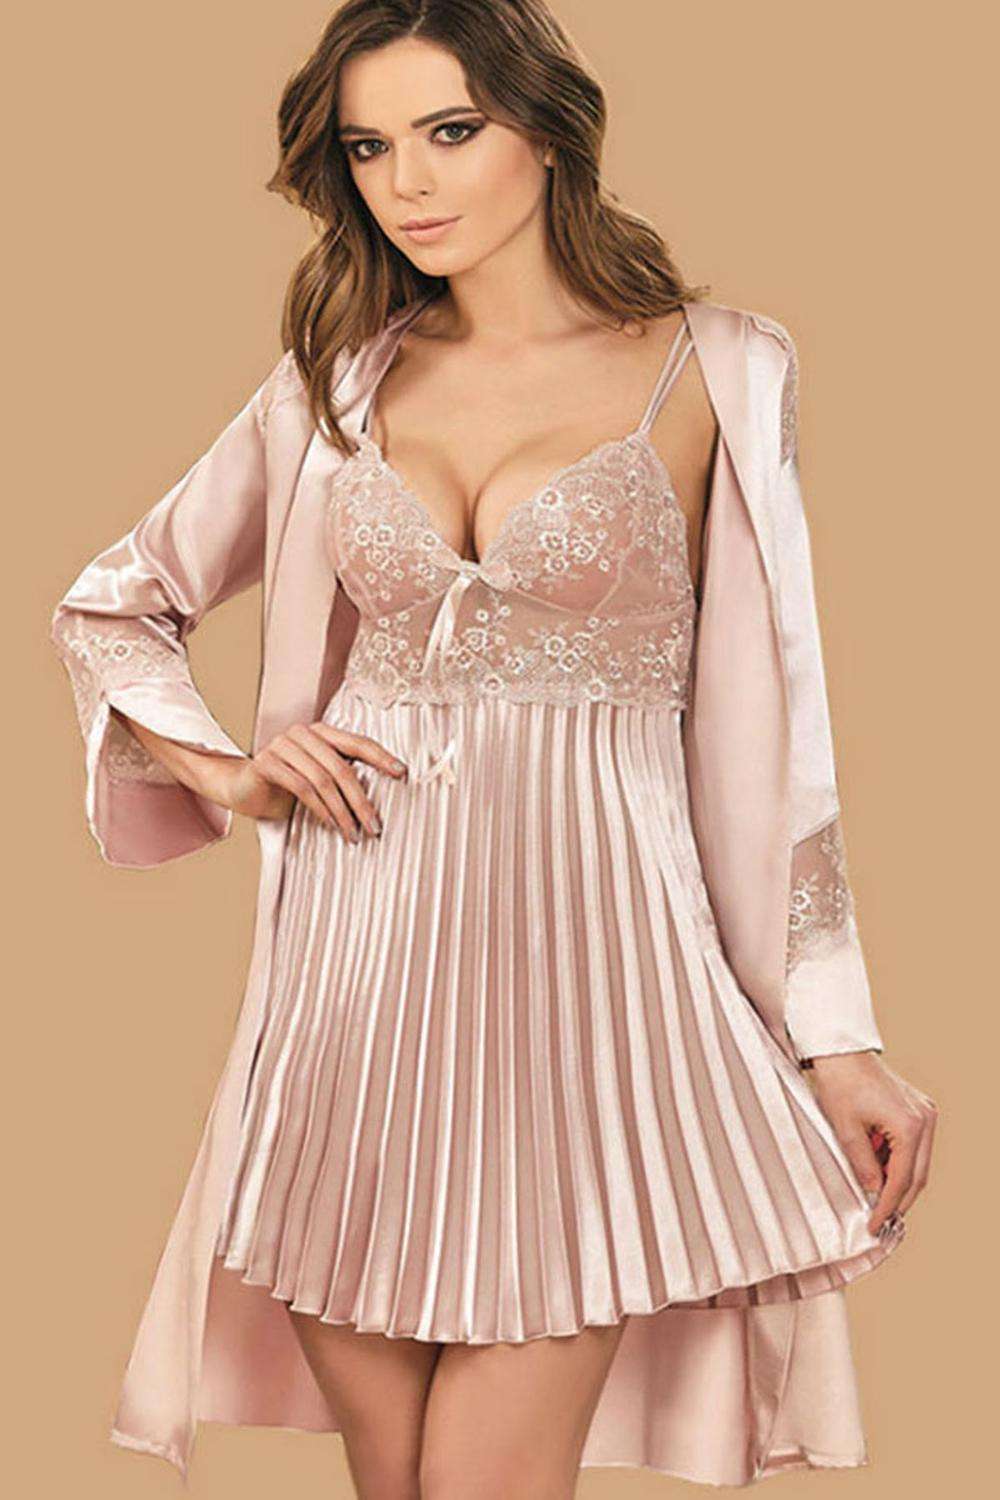 Nurteks Silk Satin Ruched Kimono Nightgown Home Sexy Comfortable Worn Skirts Pleated 2 Piece Dressing Gown Suit